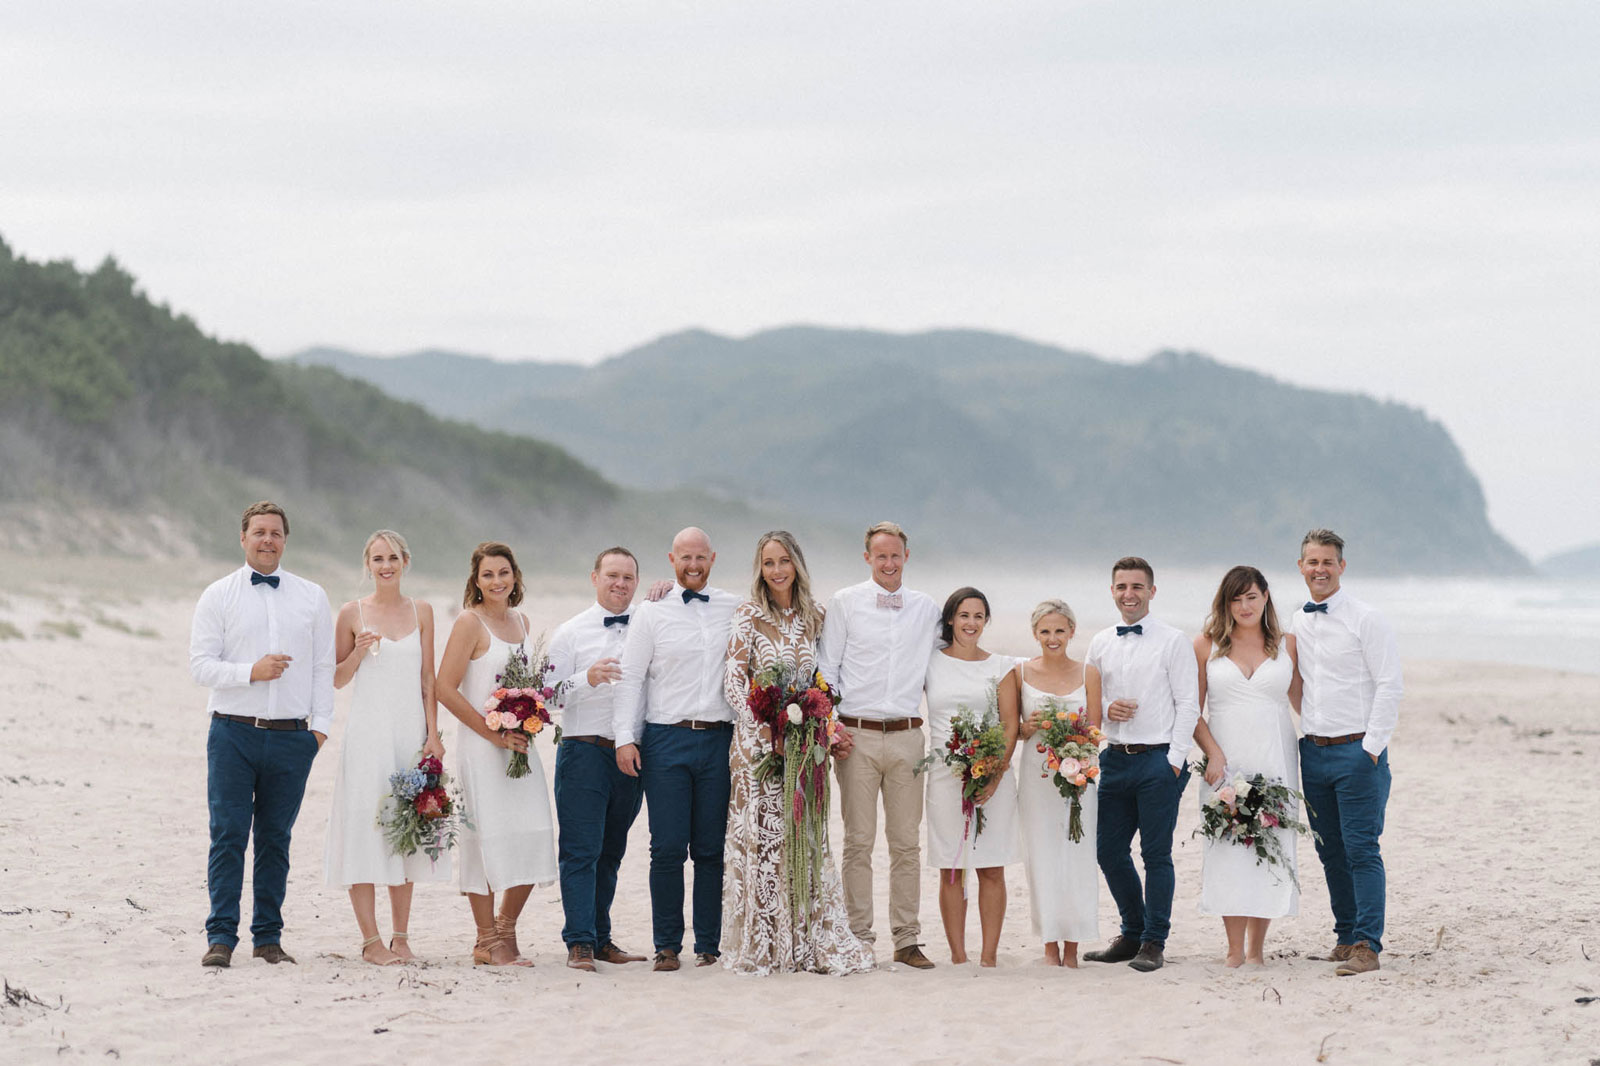 newfound-a-b-opoutere-coastal-camping-coromandel-wedding-wedding-photographer-137